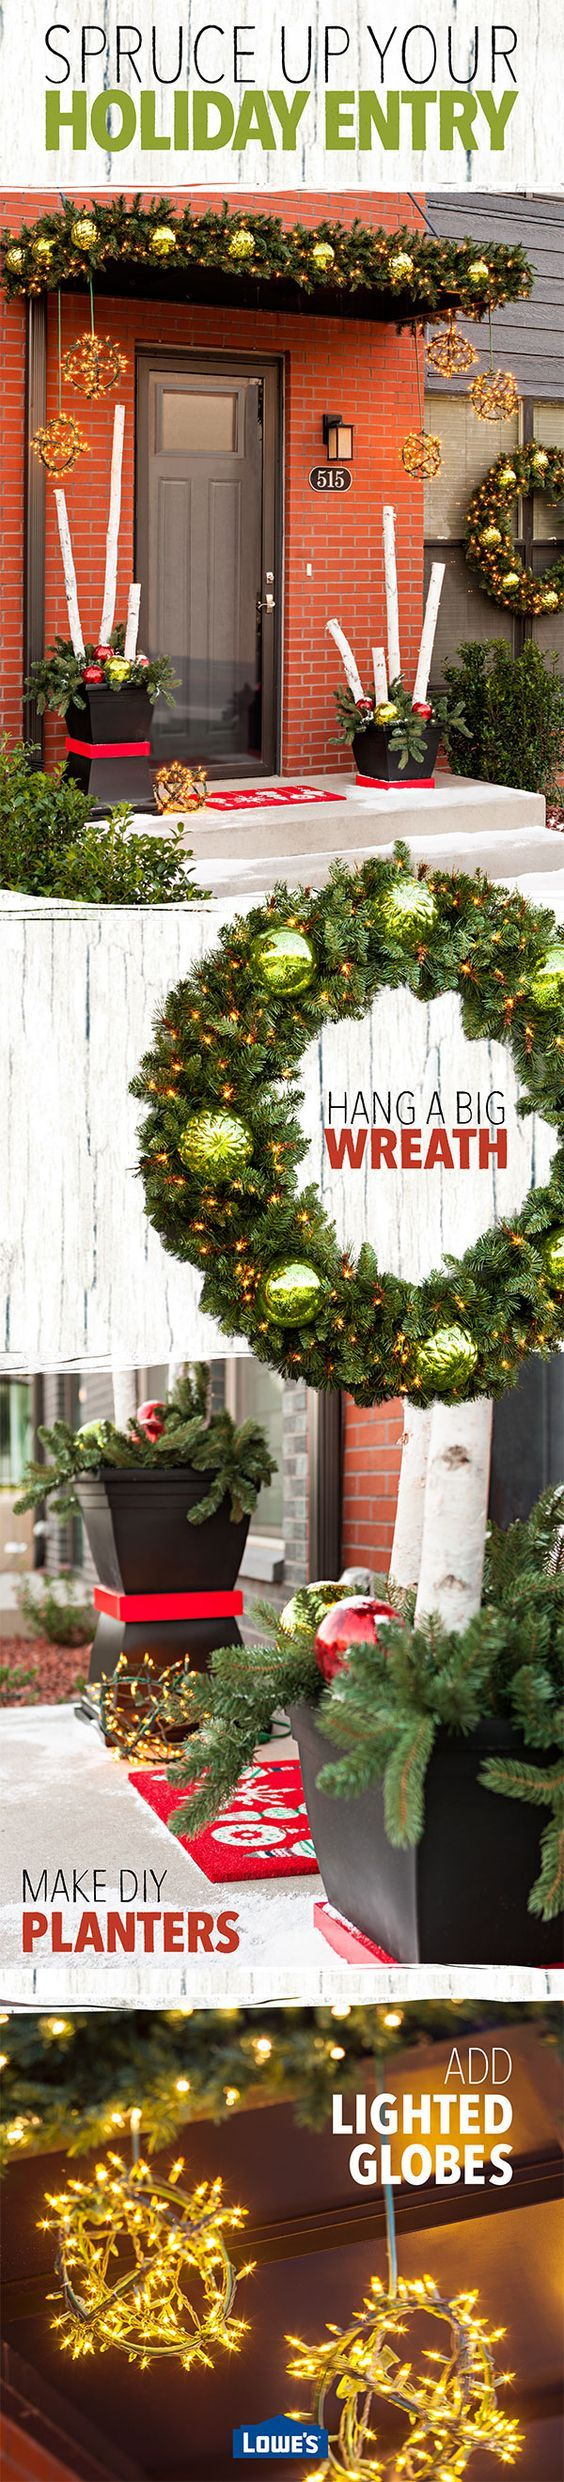 A small entry can make a big holiday statement with easy Christmas decorating ideas. Globe lights, lighted garland, a pre-lit wreath, and DIY topiaries frame the entrance of your condo or townhome with a welcoming holiday glow.